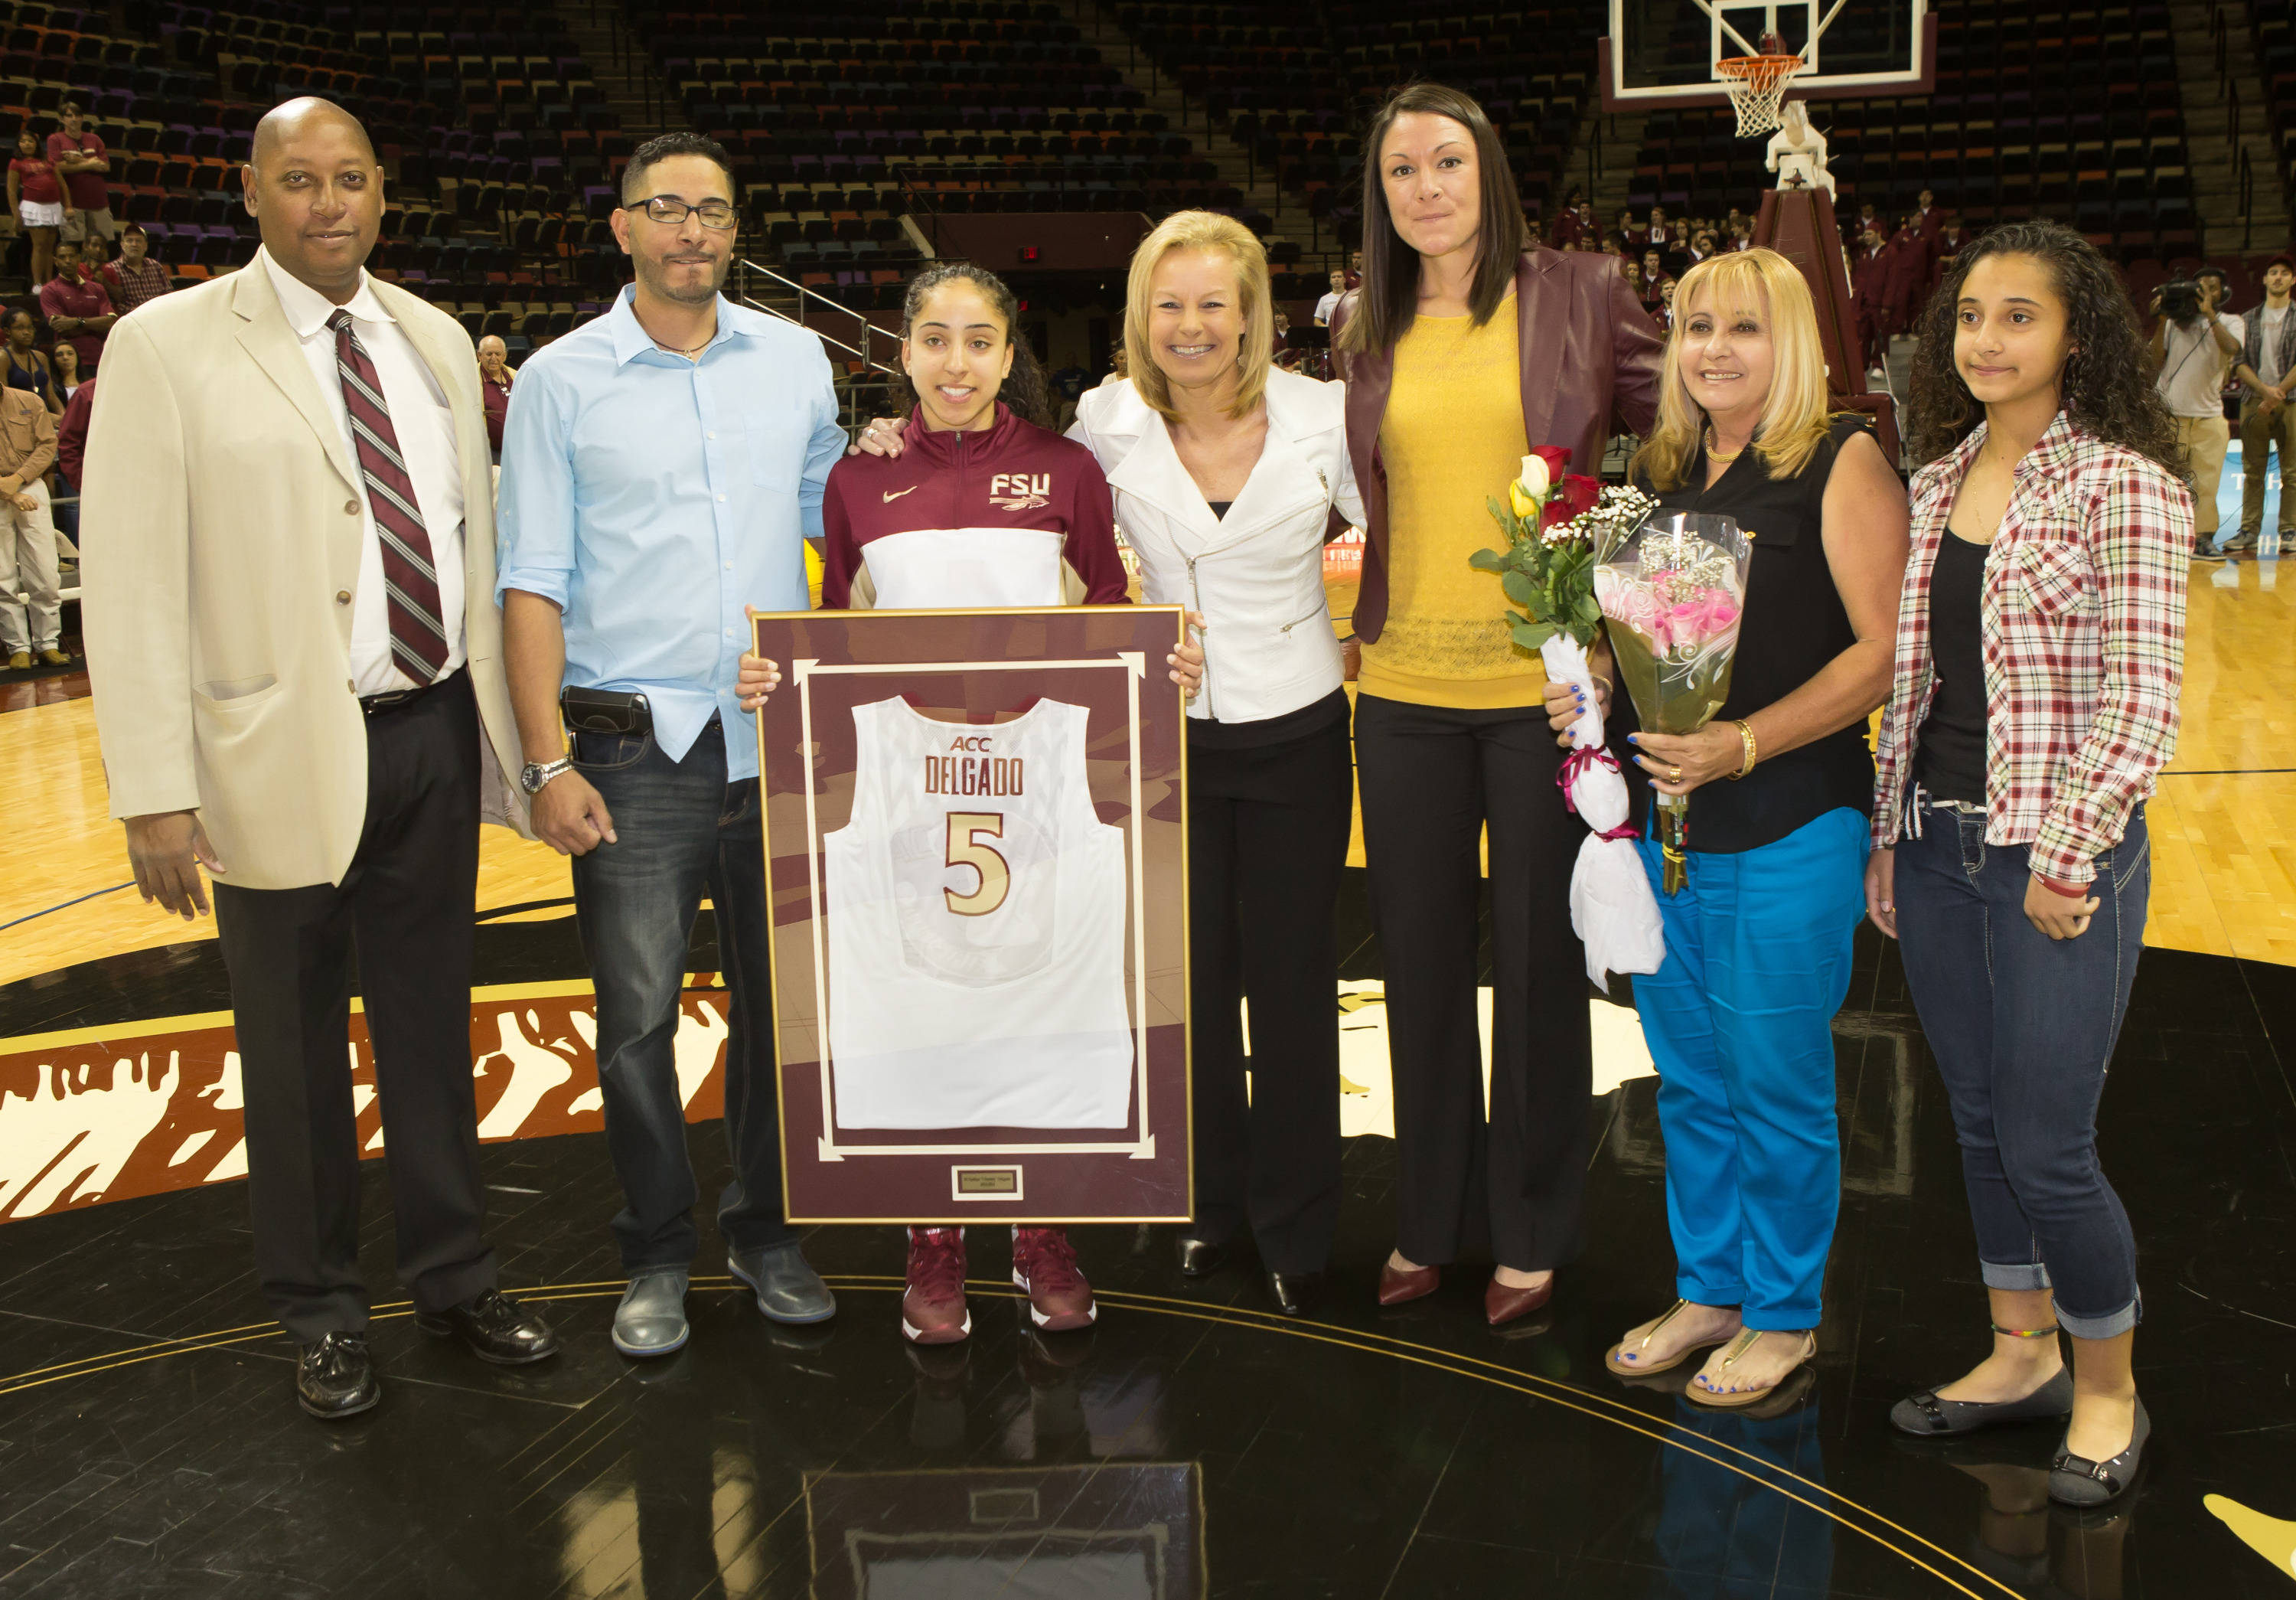 Senior Cheetah Delgado (5) is recognized by AD Stan Wilcox, SWA Vanessa Fuchs, and Coach Sue Semrau.